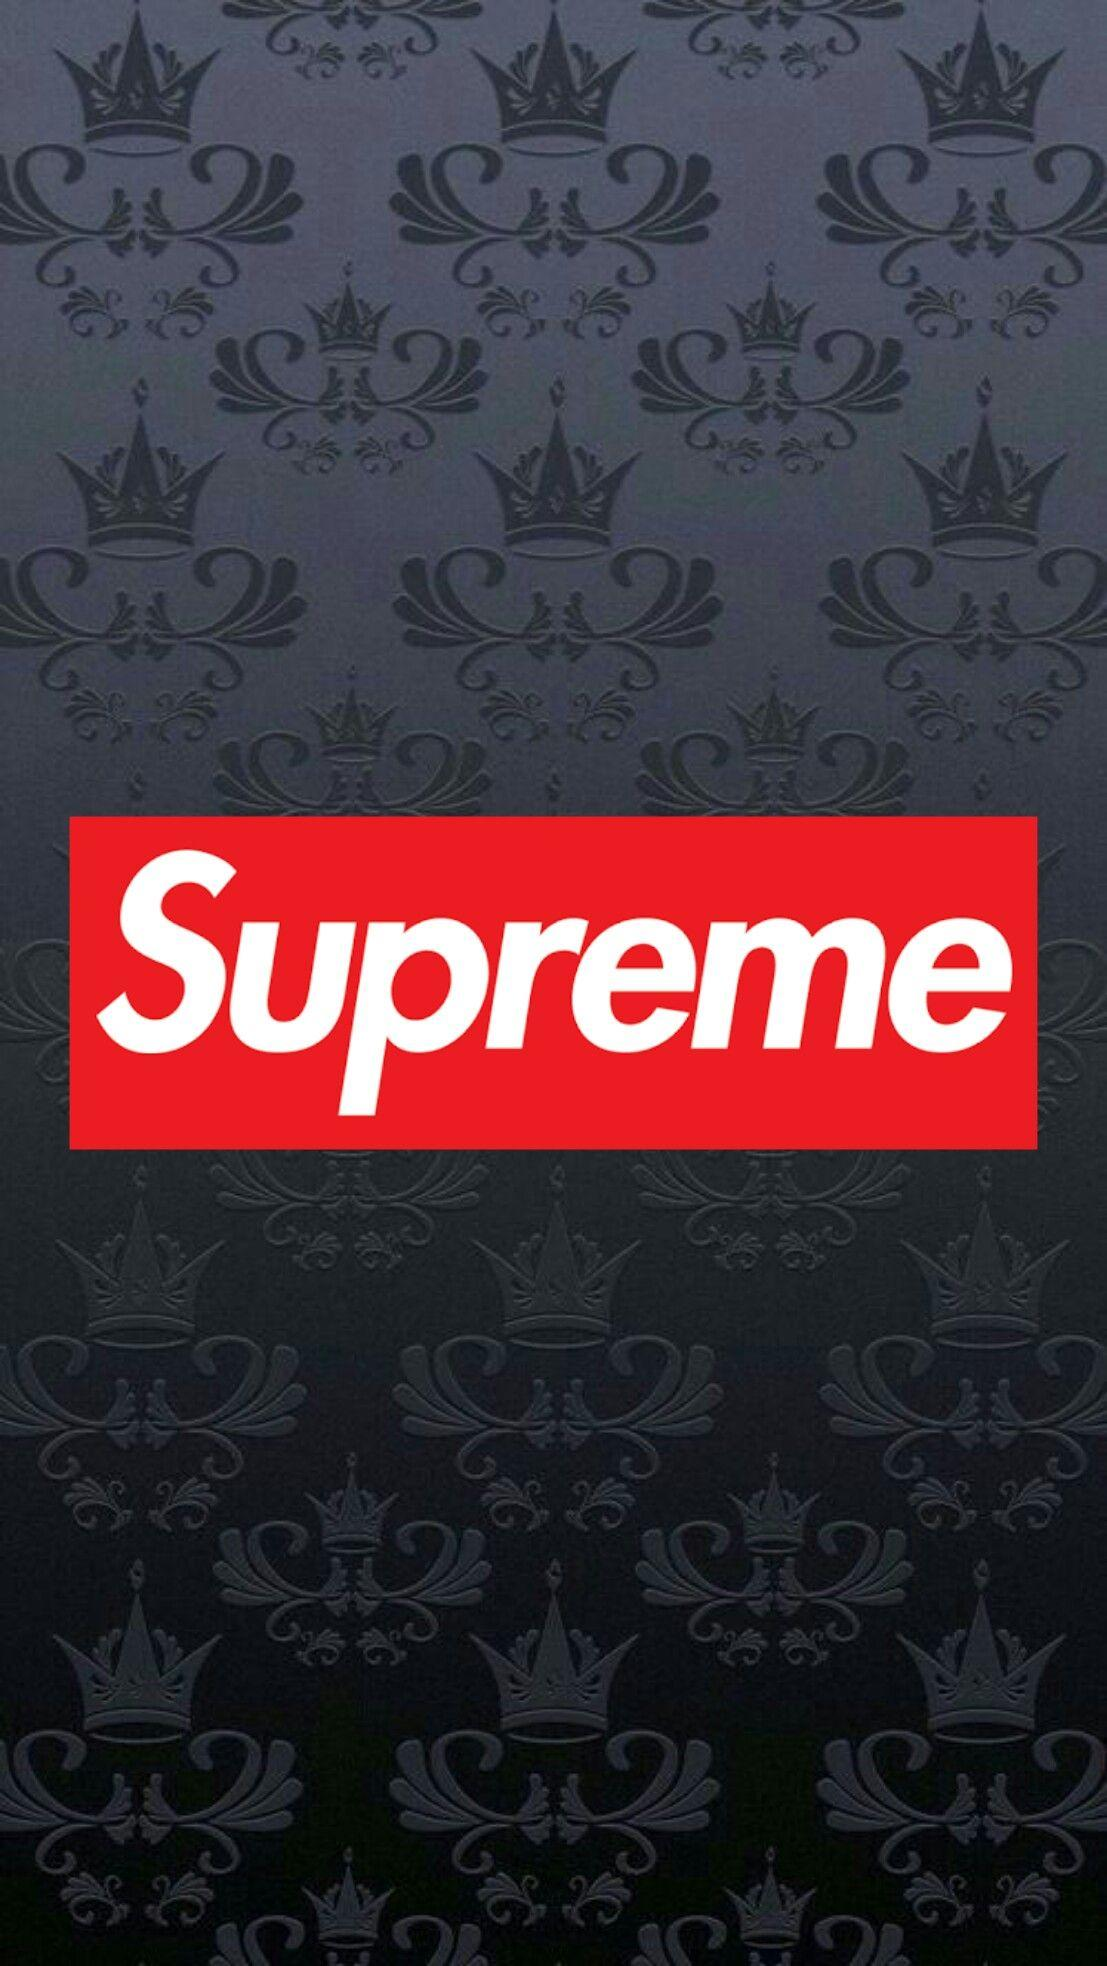 Supreme Hd Wallpapers Wallpaper Cave